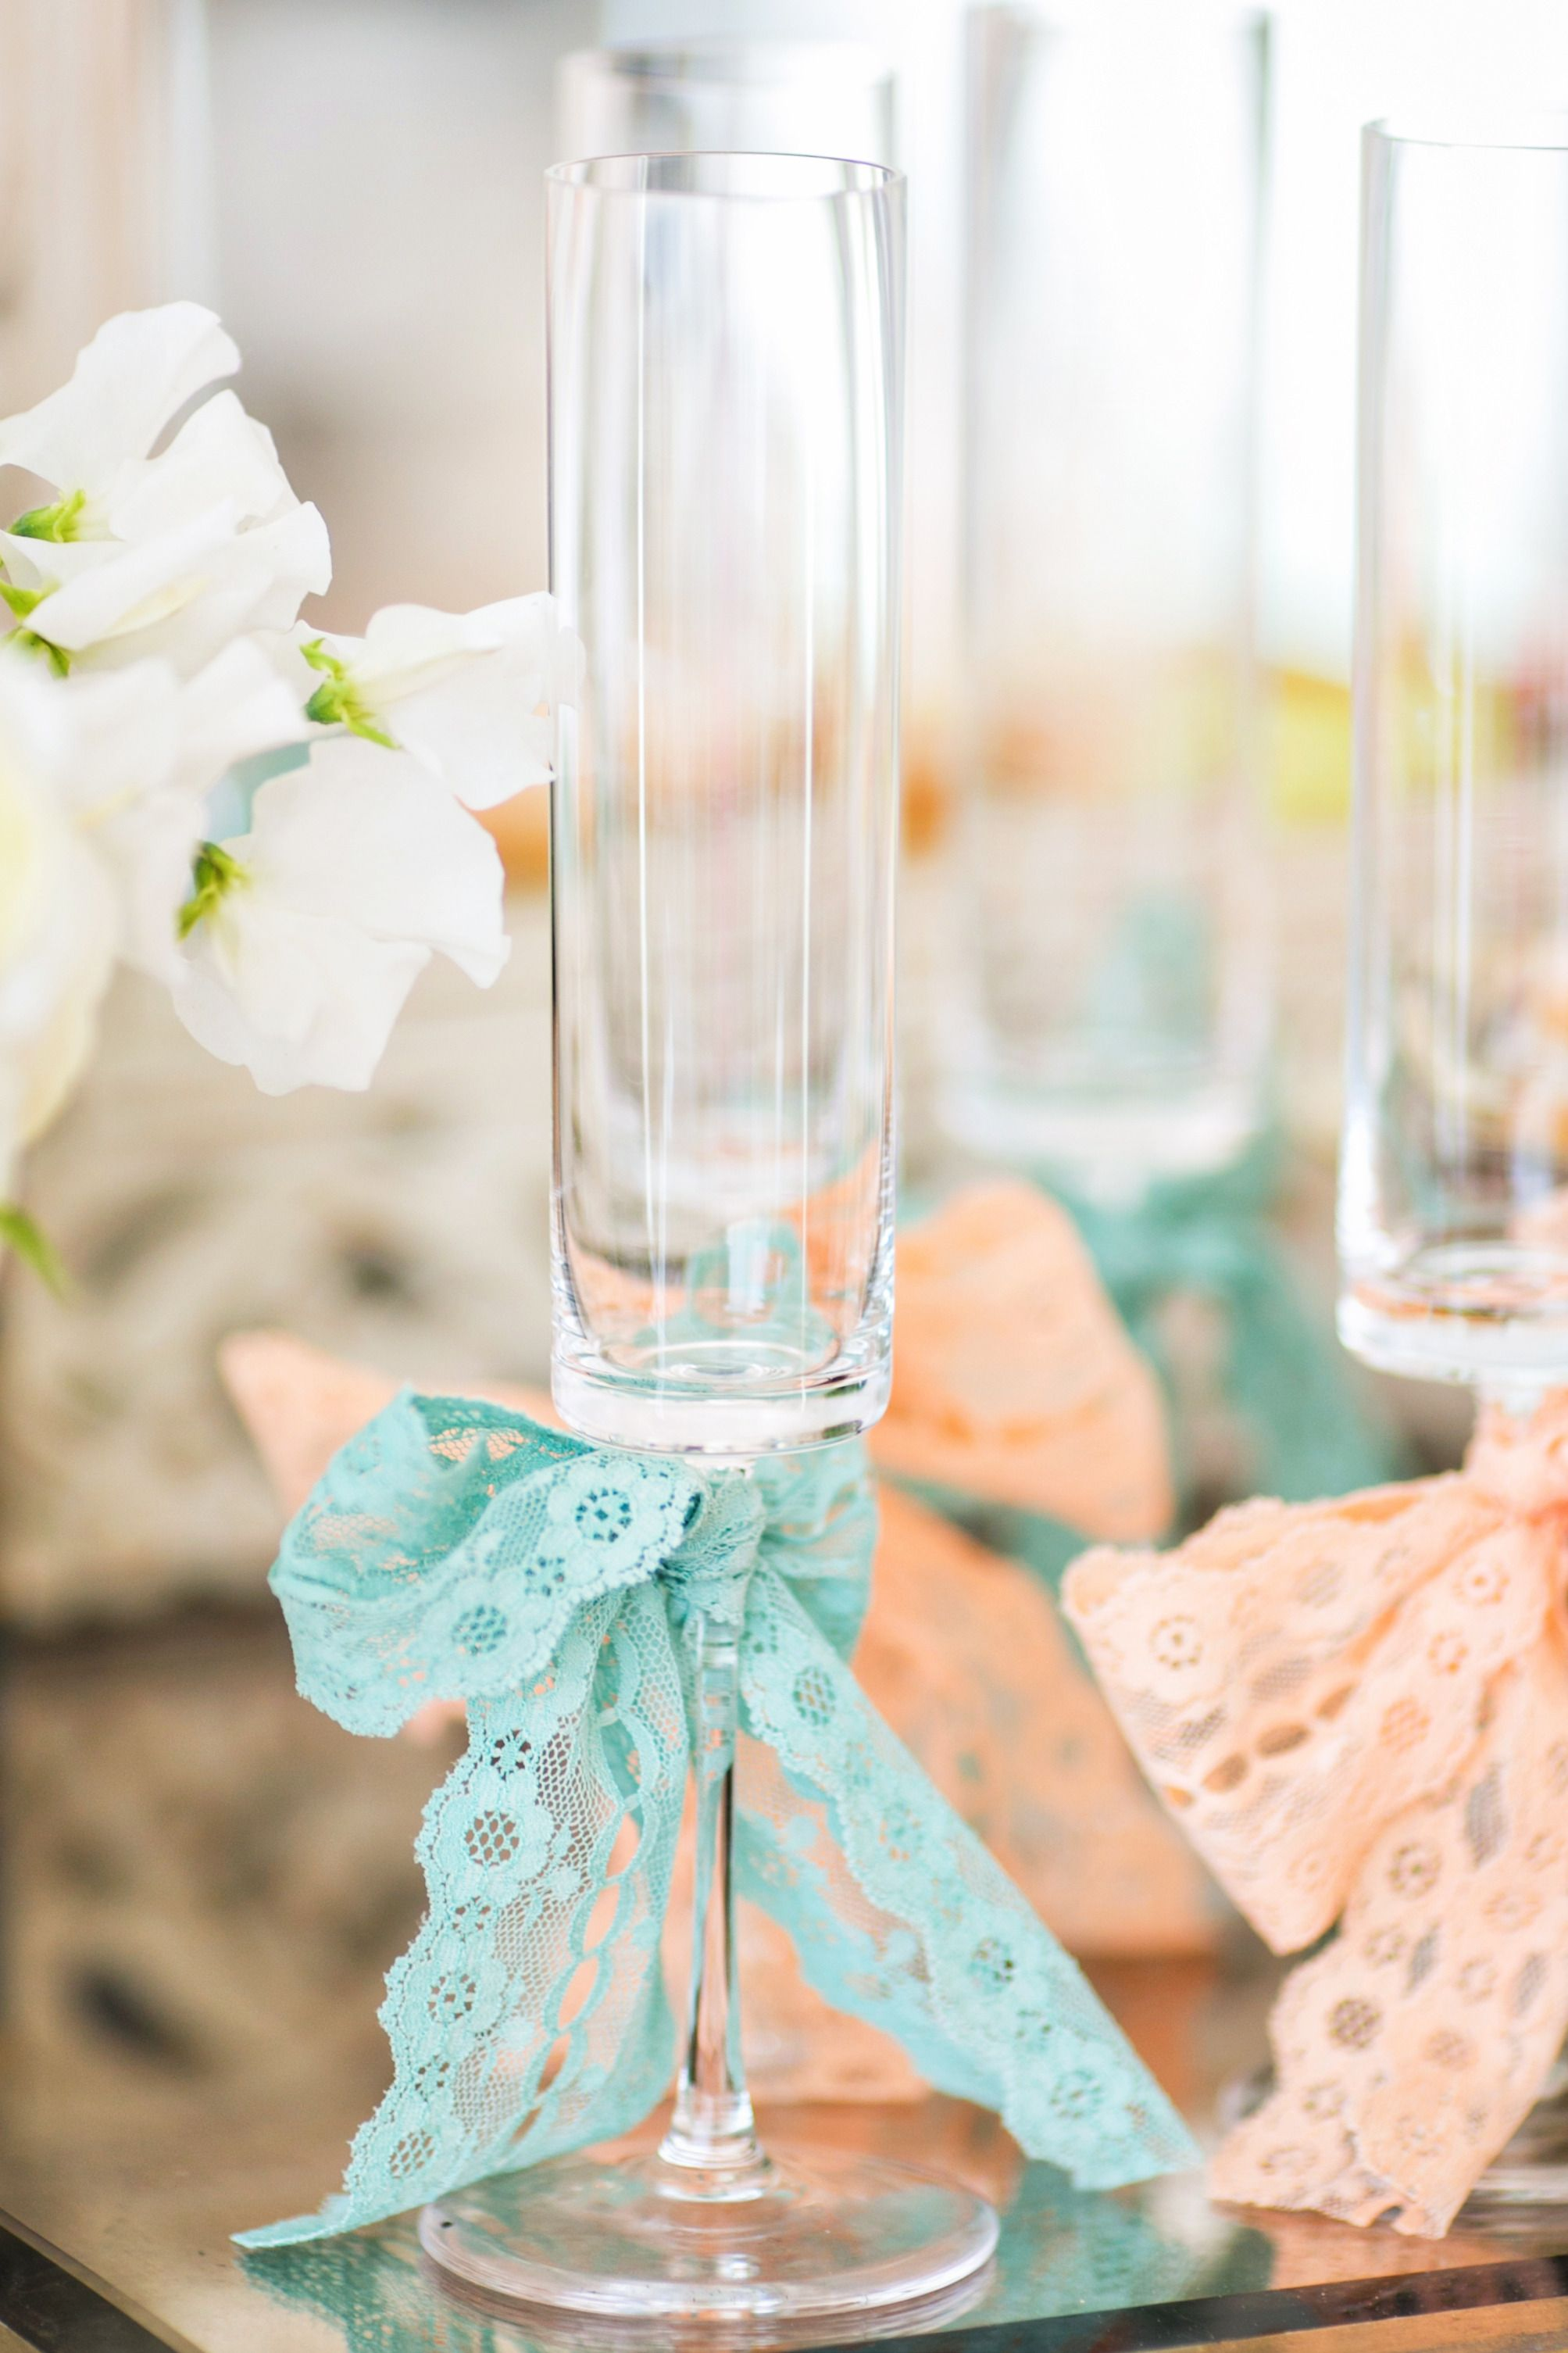 weddings decorations ideas boudoir bridal shower inspiration shower inspiration 1227